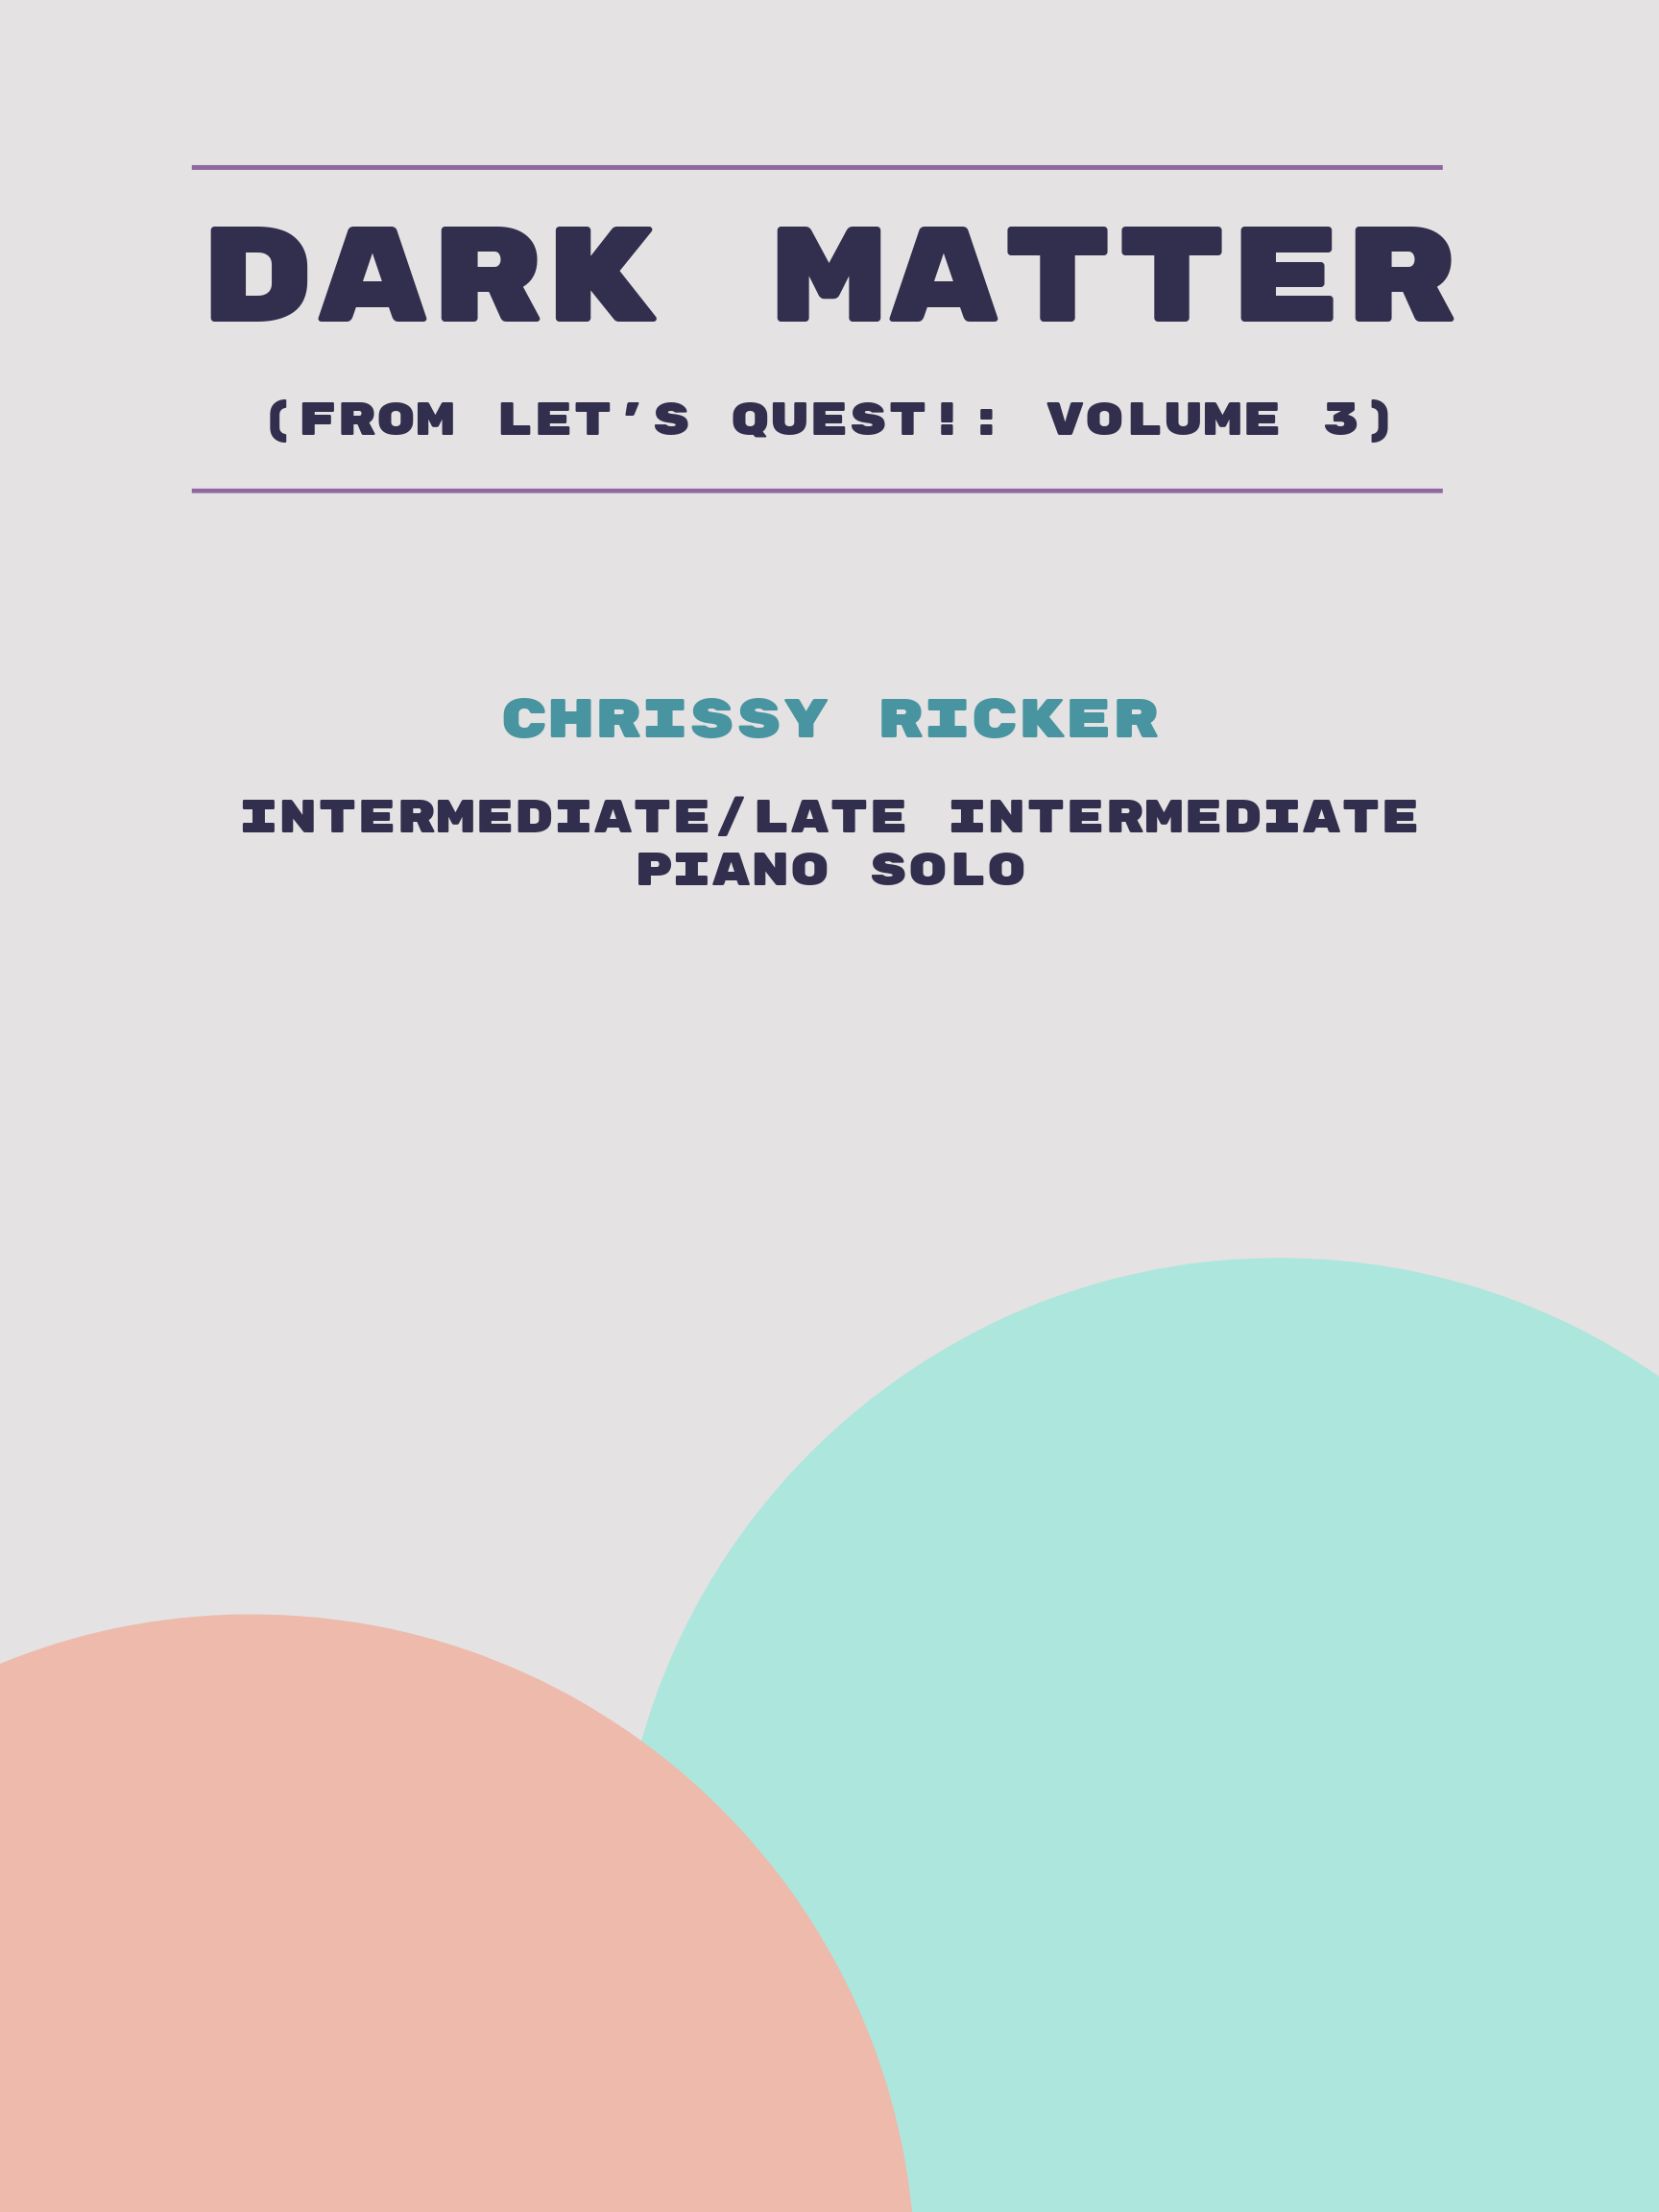 Dark Matter by Chrissy Ricker